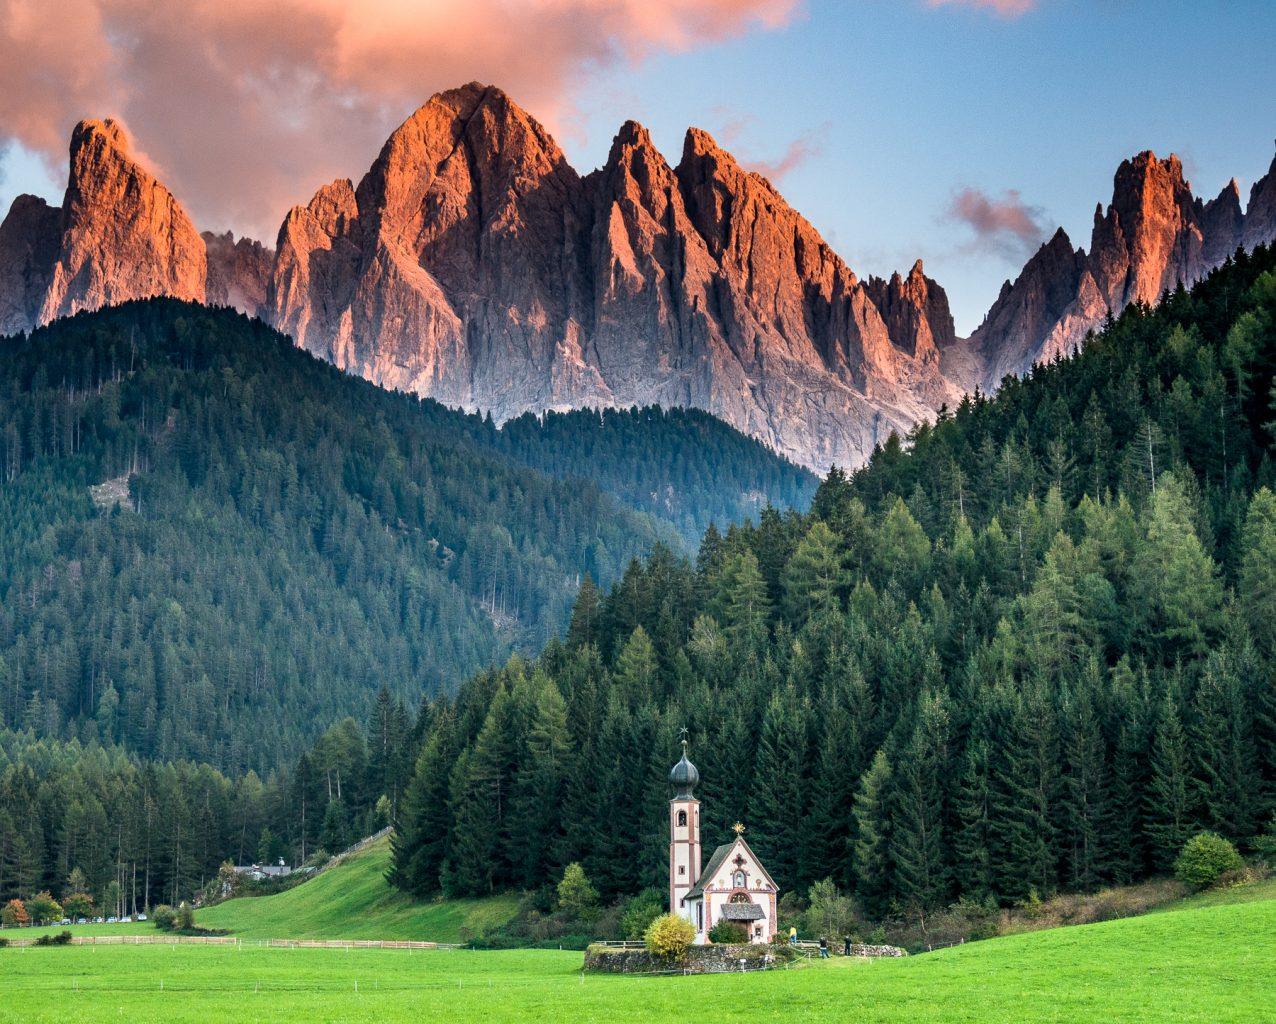 Gardena Pass: Santa Maddalena Church